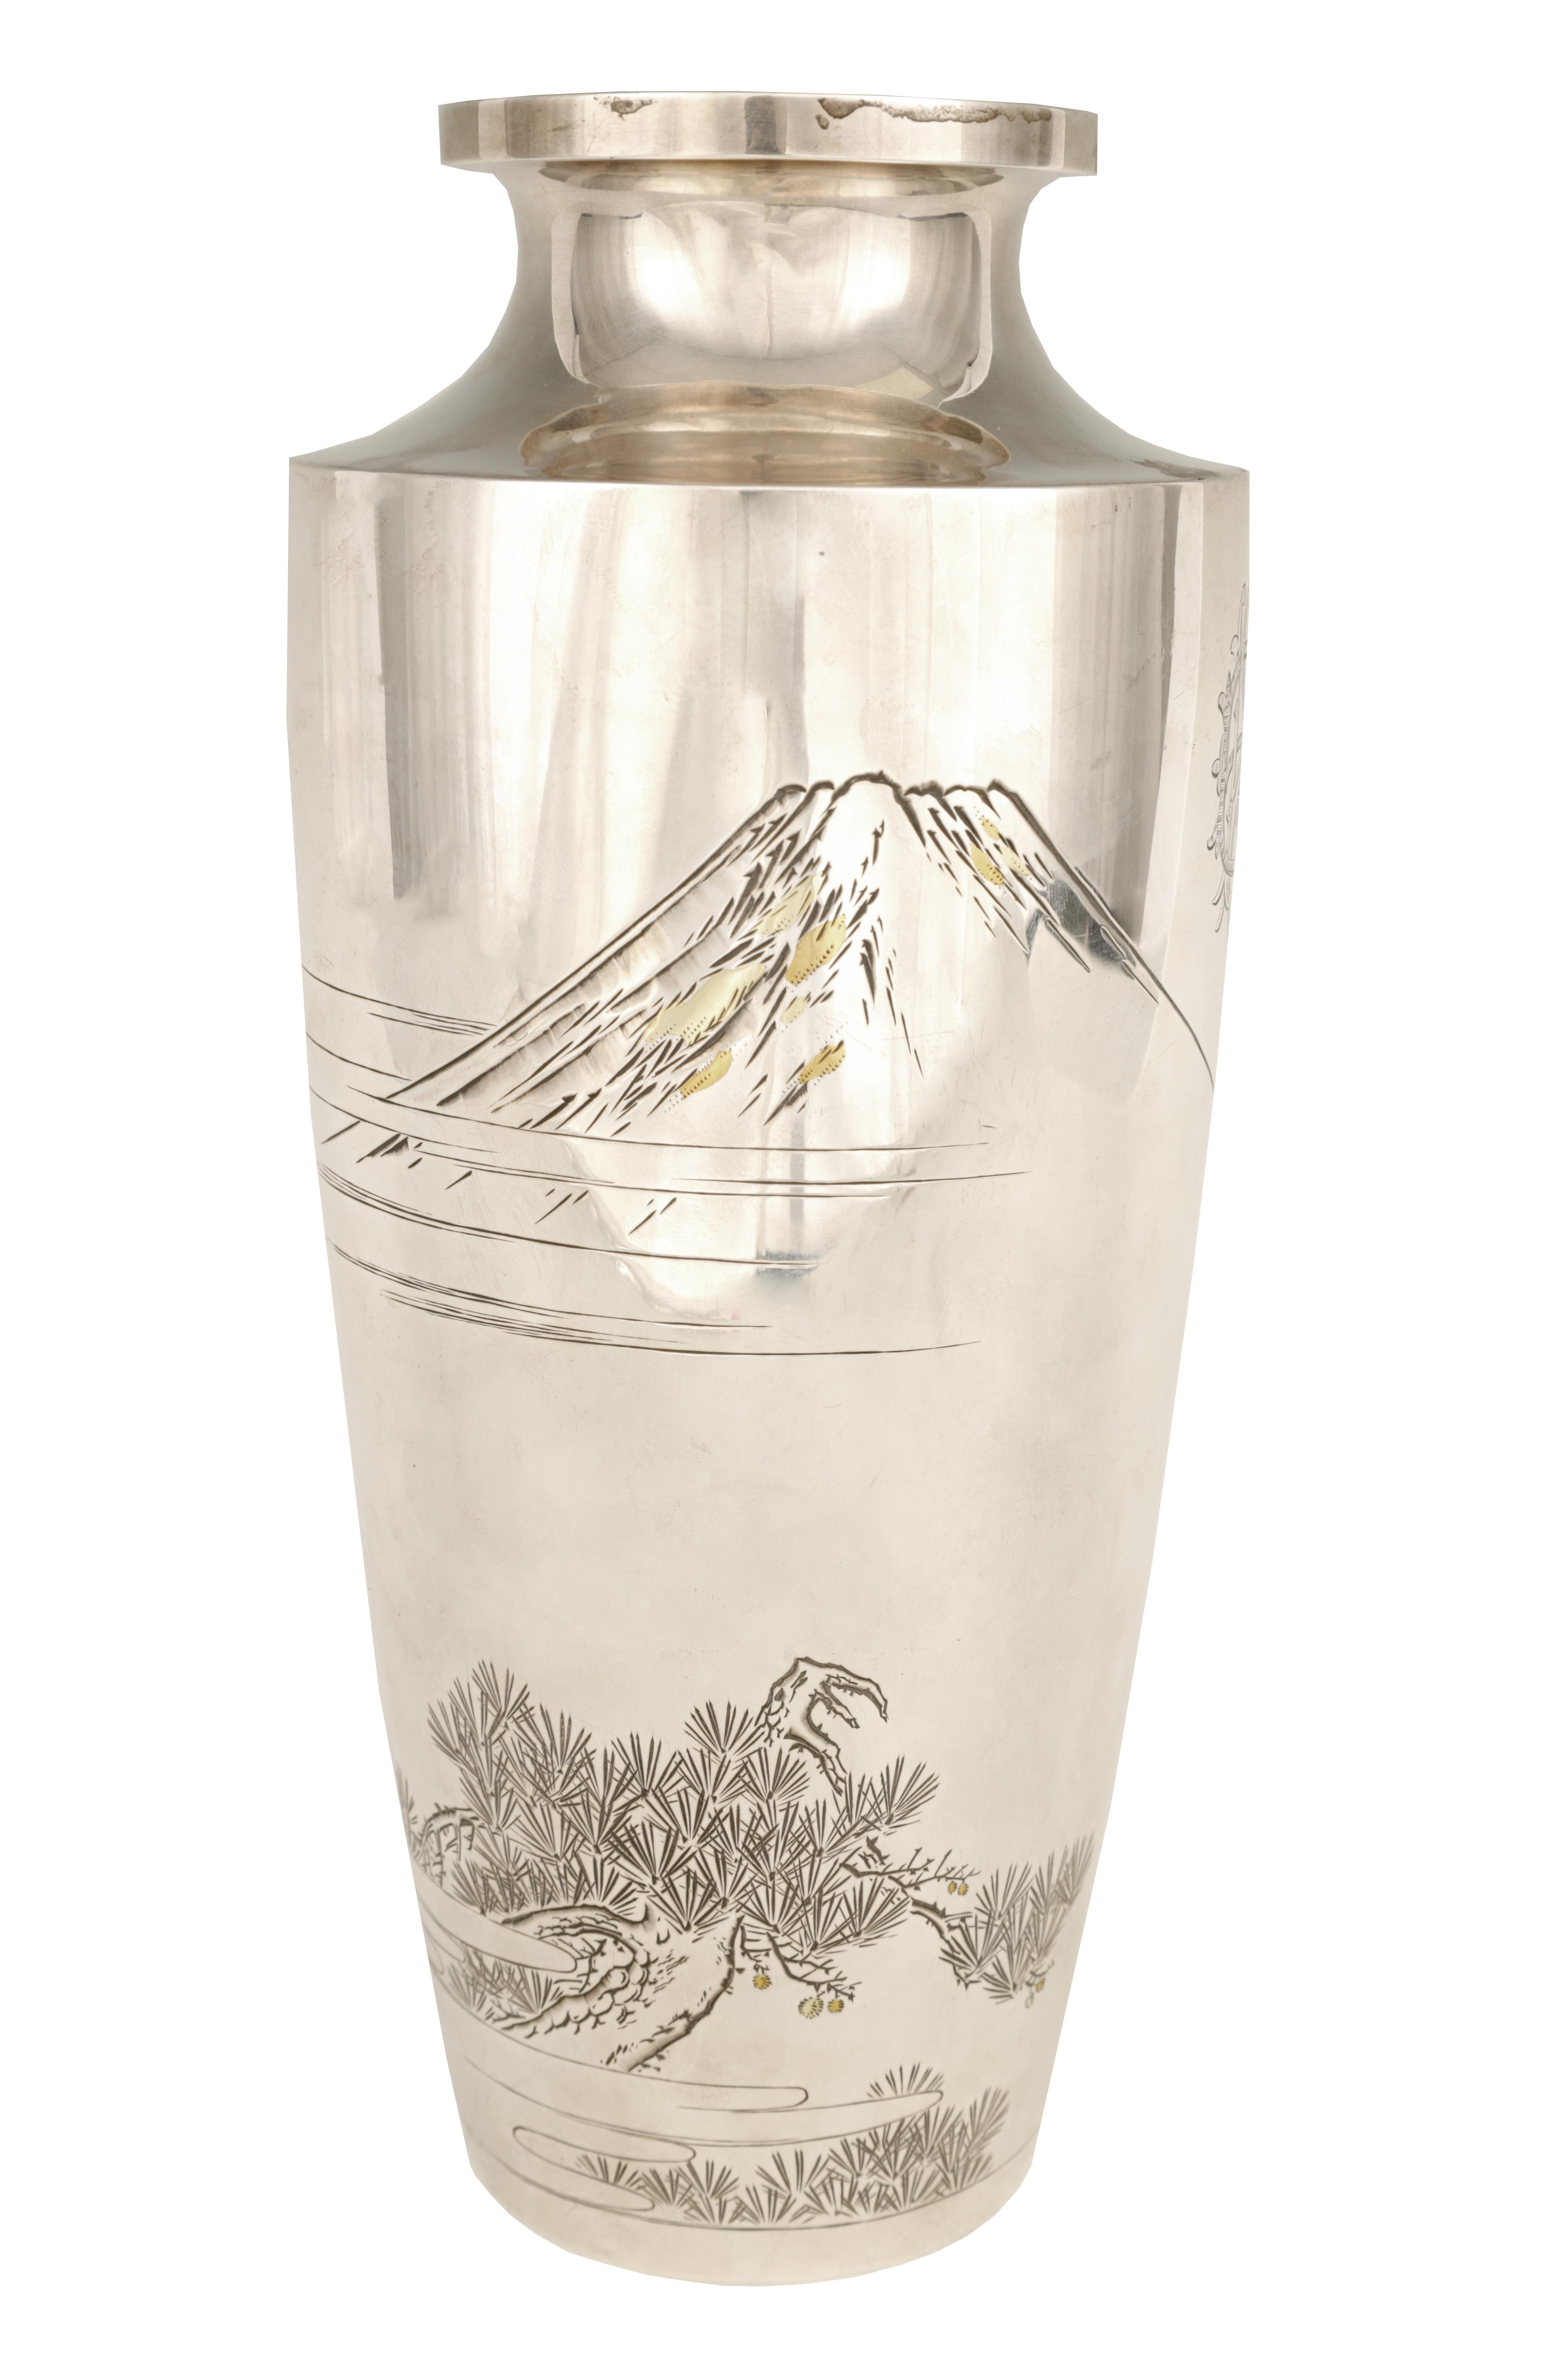 A LARGE JAPANESE MEIJI PERIOD SILVER VASE embellished with gilt highlights and engraved scene of